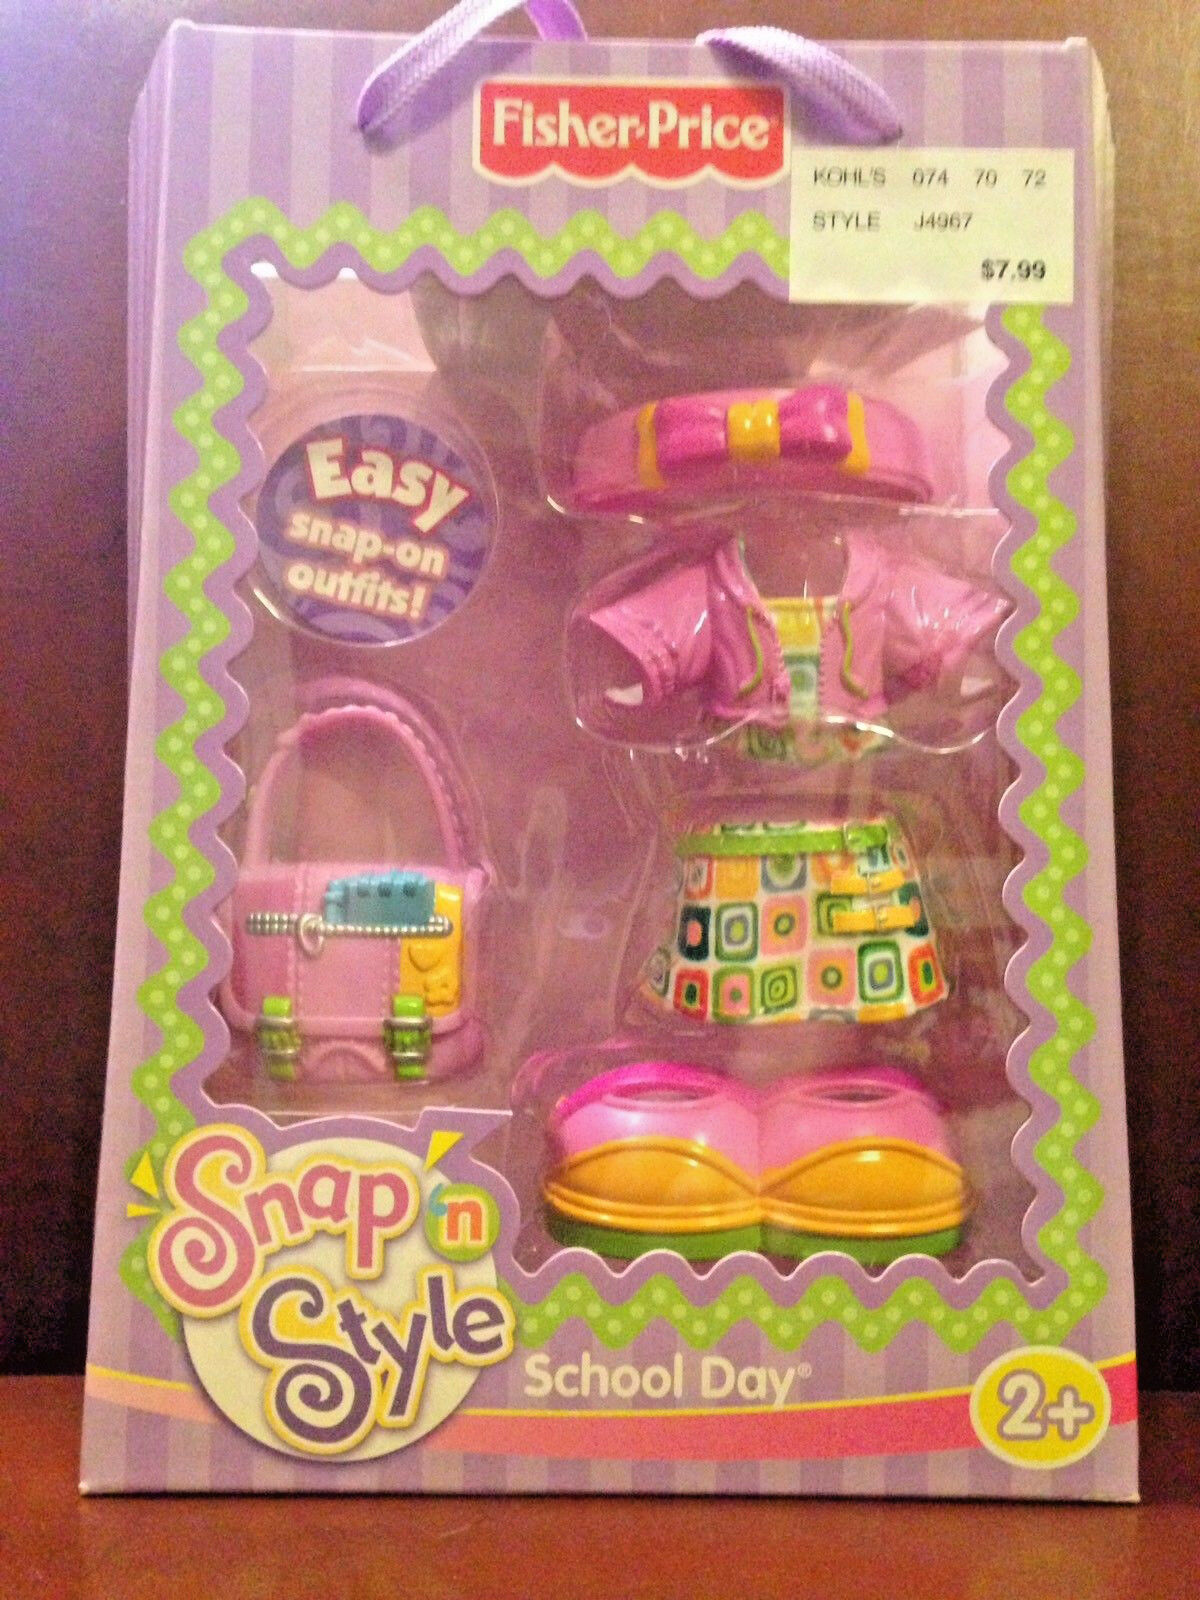 Fisher Price Snap n Style School Day Outfit - Rare Rare Rare NIB 857ea1